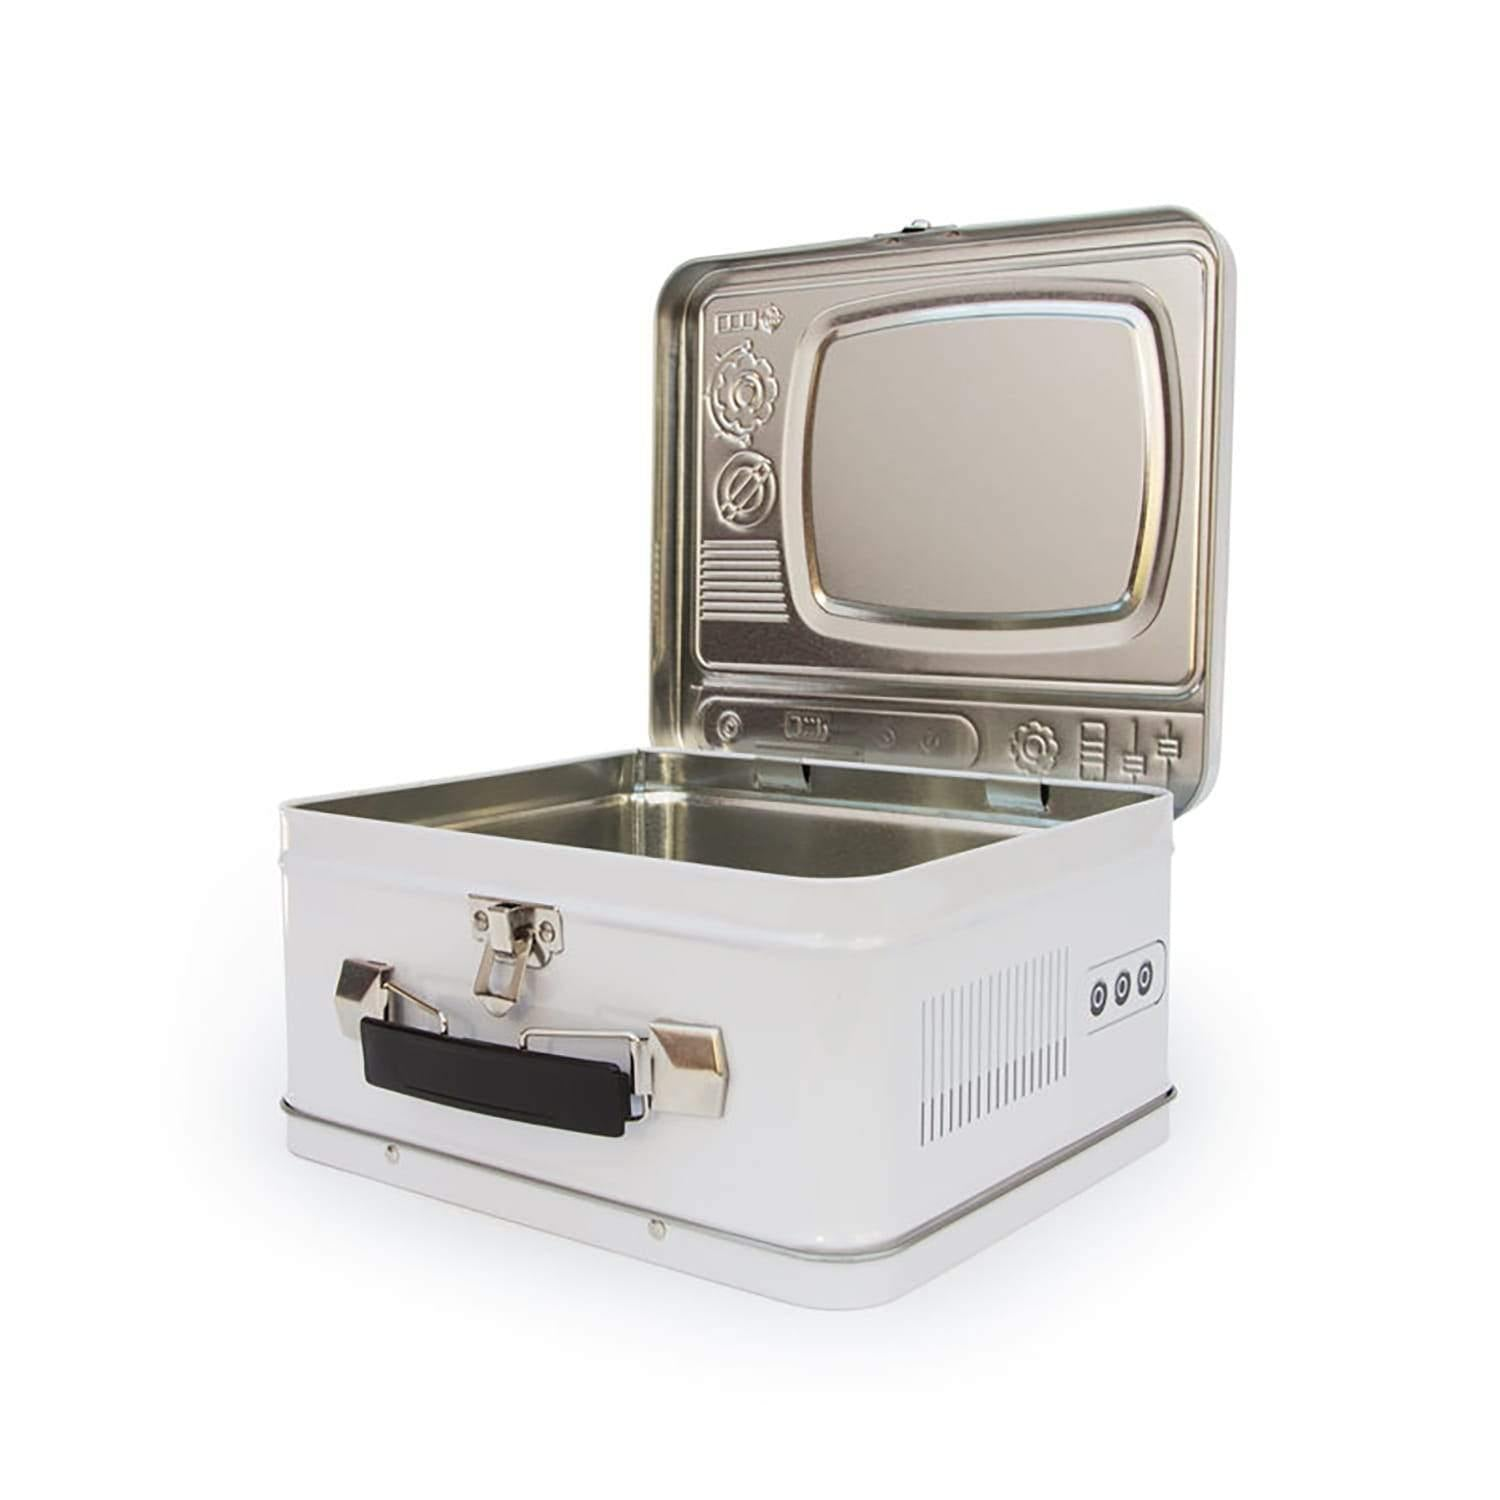 LDN Lunch Box TV Space (White) - Science Museum Shop 2